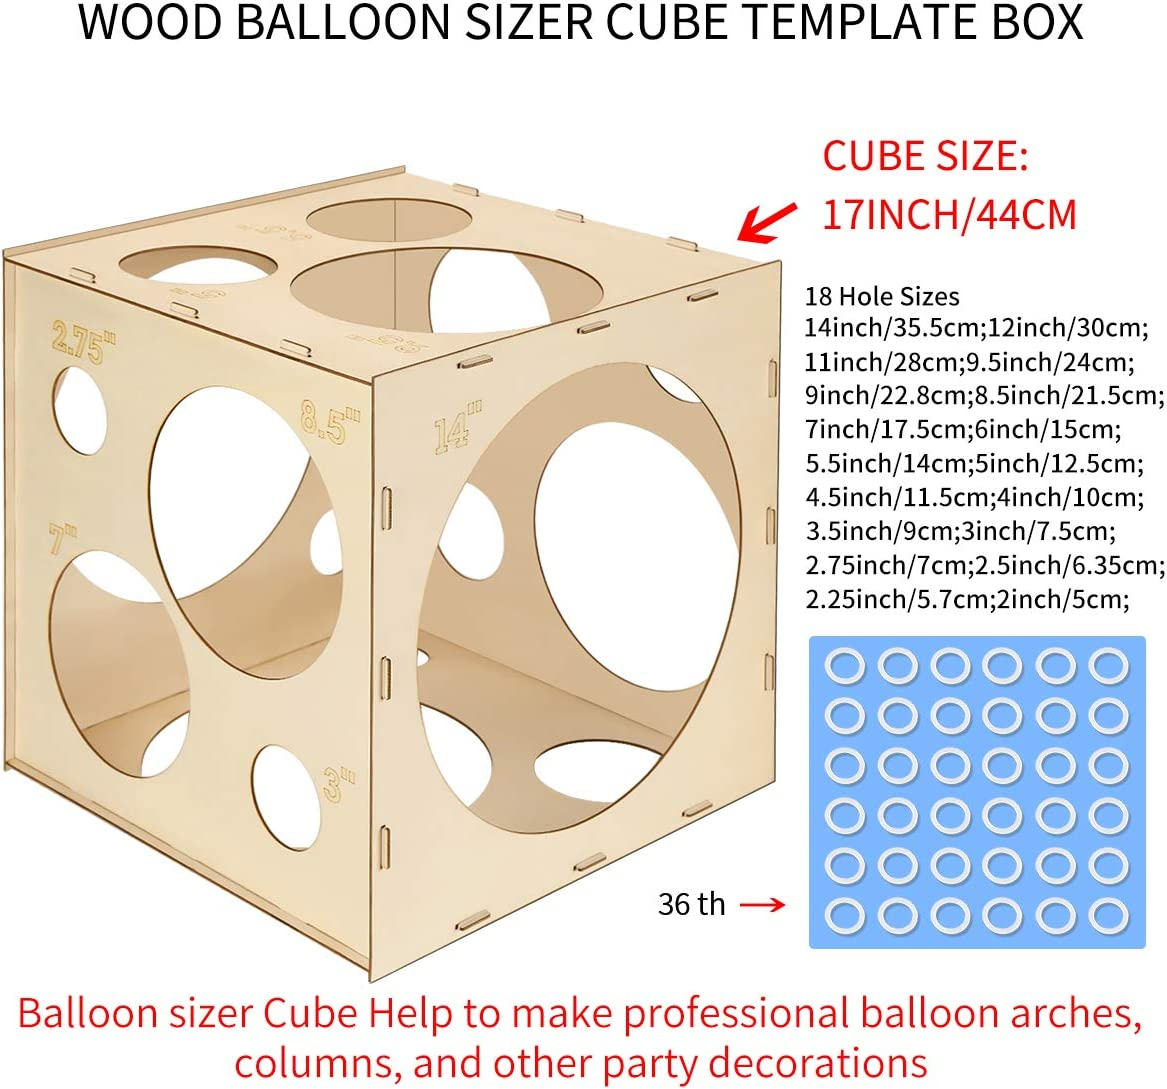 Balloon Arches Balloon Columns Large Balloon Size Measurement Tool for Balloon Decorations 2-14 Inch Worown 18 Holes Collapsible Wood Balloon Sizer Box Cube